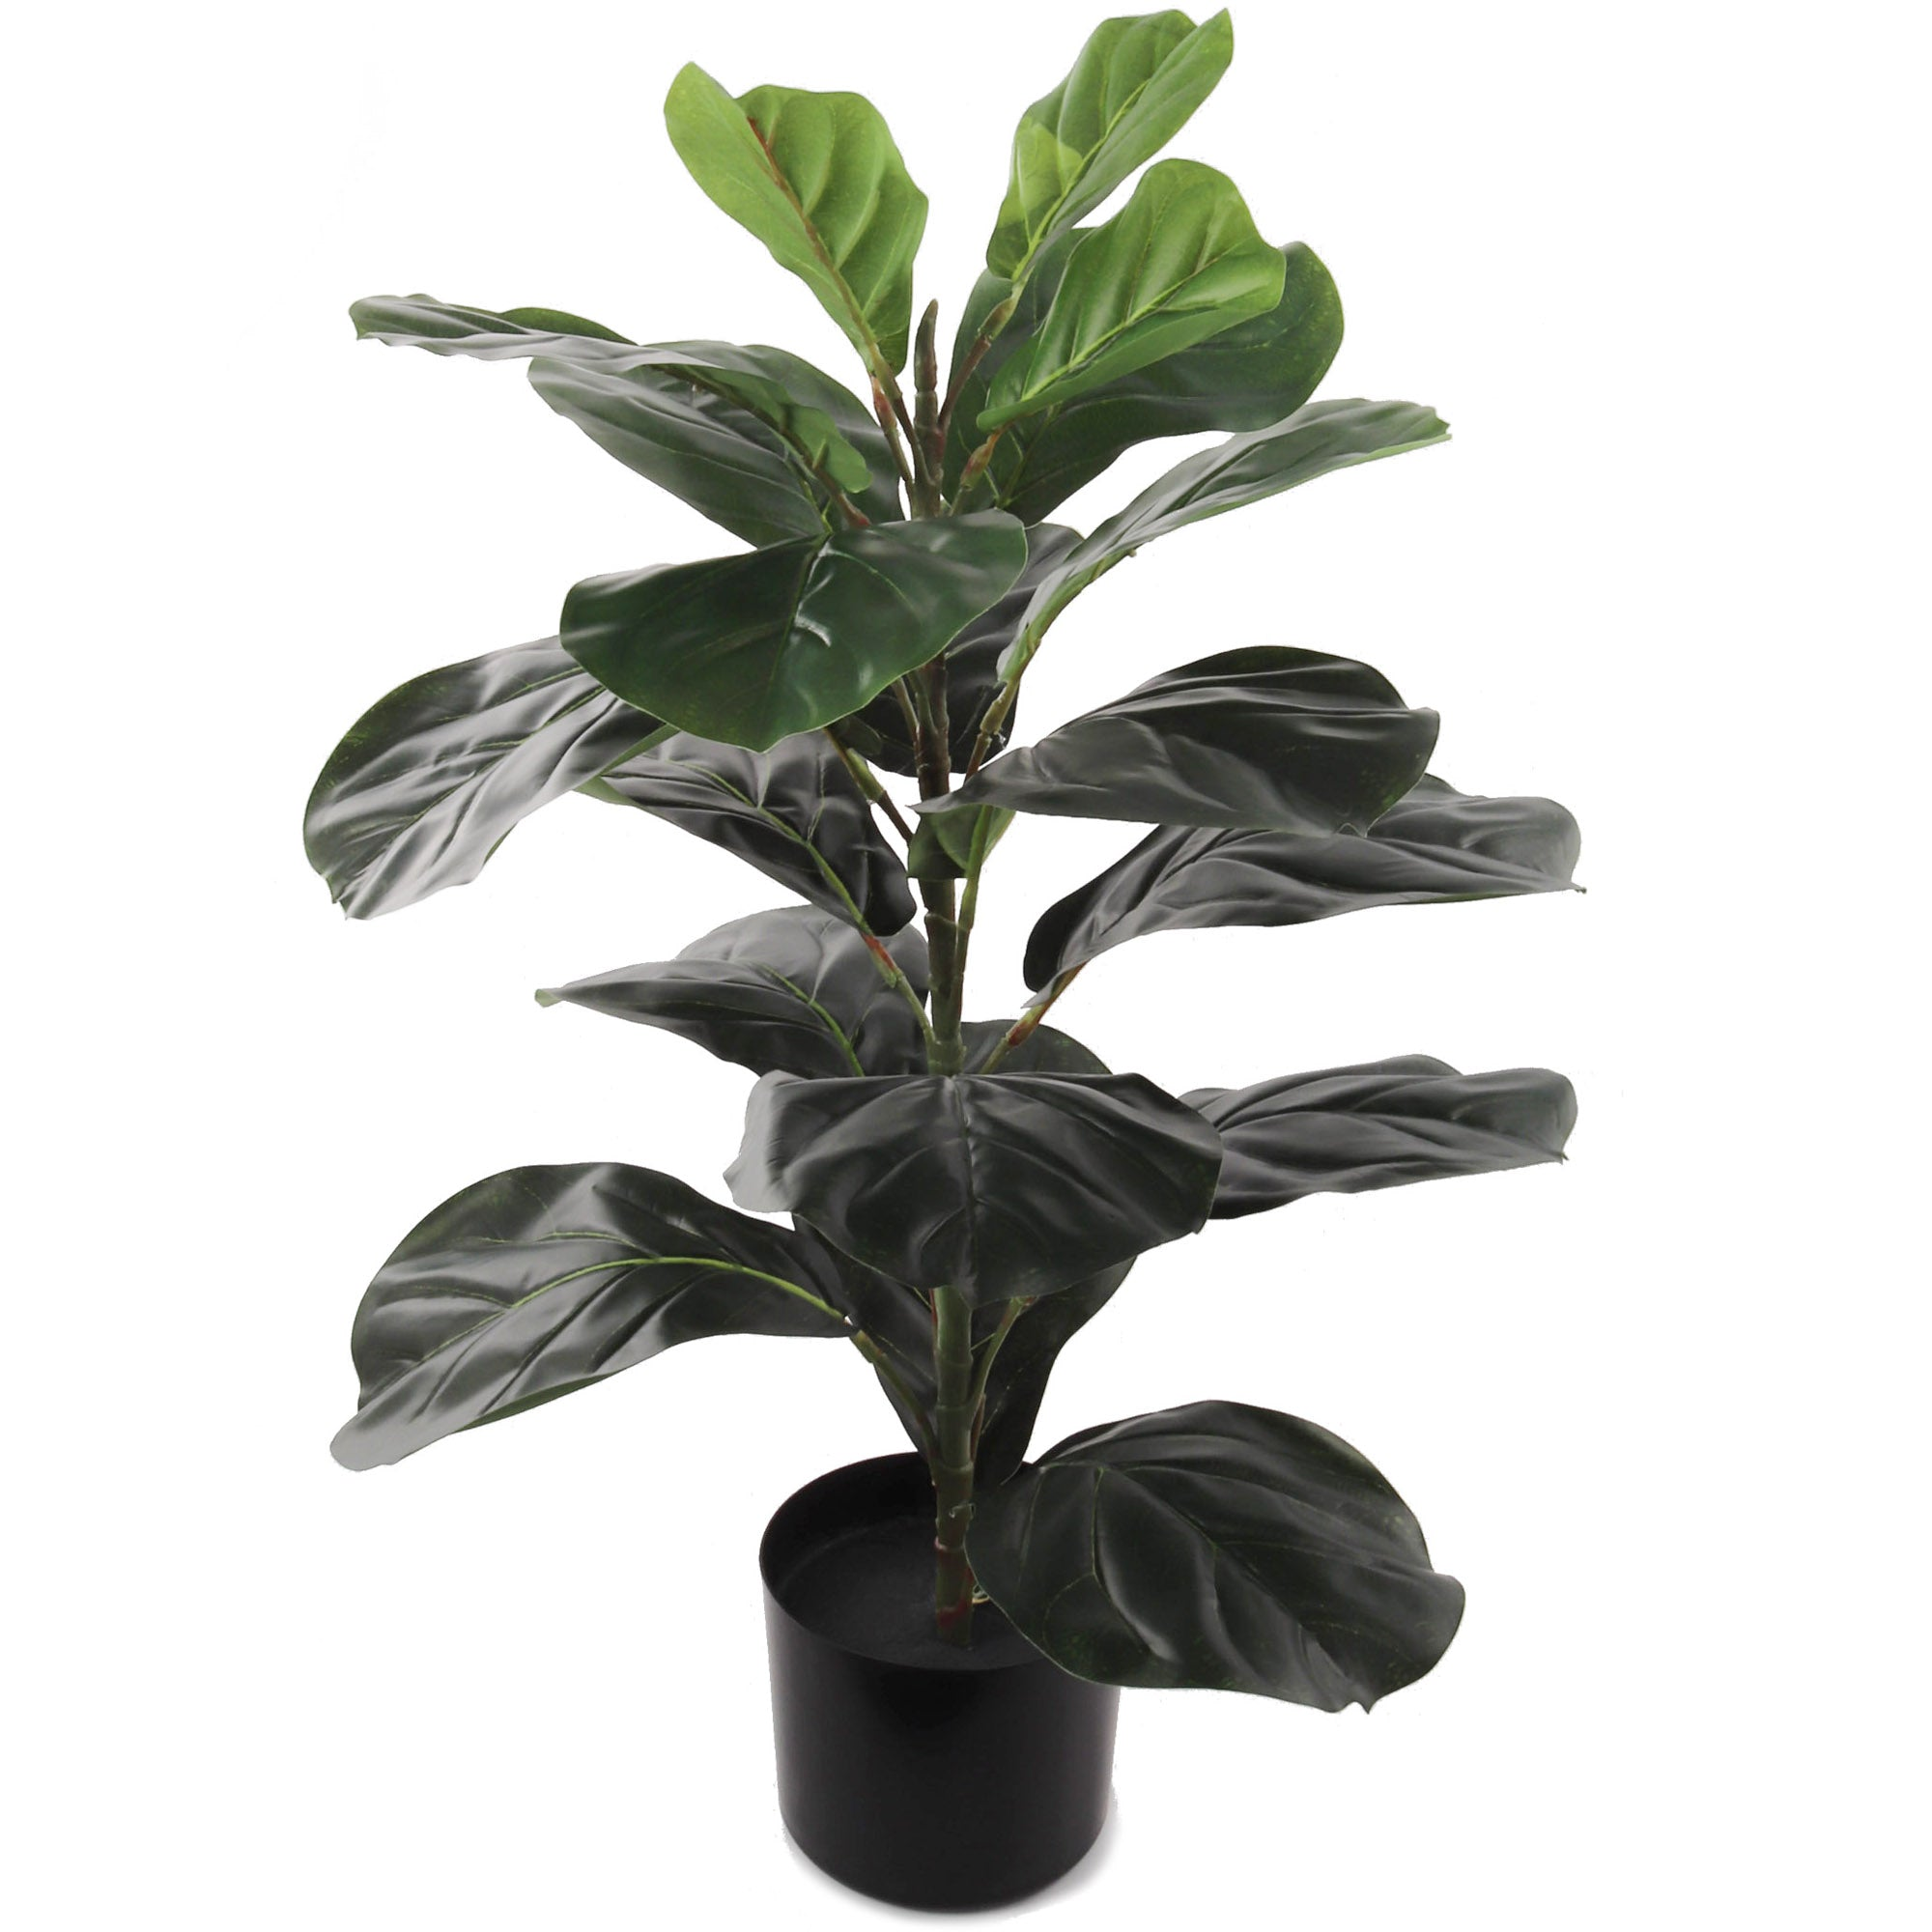 "Fiddle Leaf Ficus Plant 30"" with 21 Leaves"